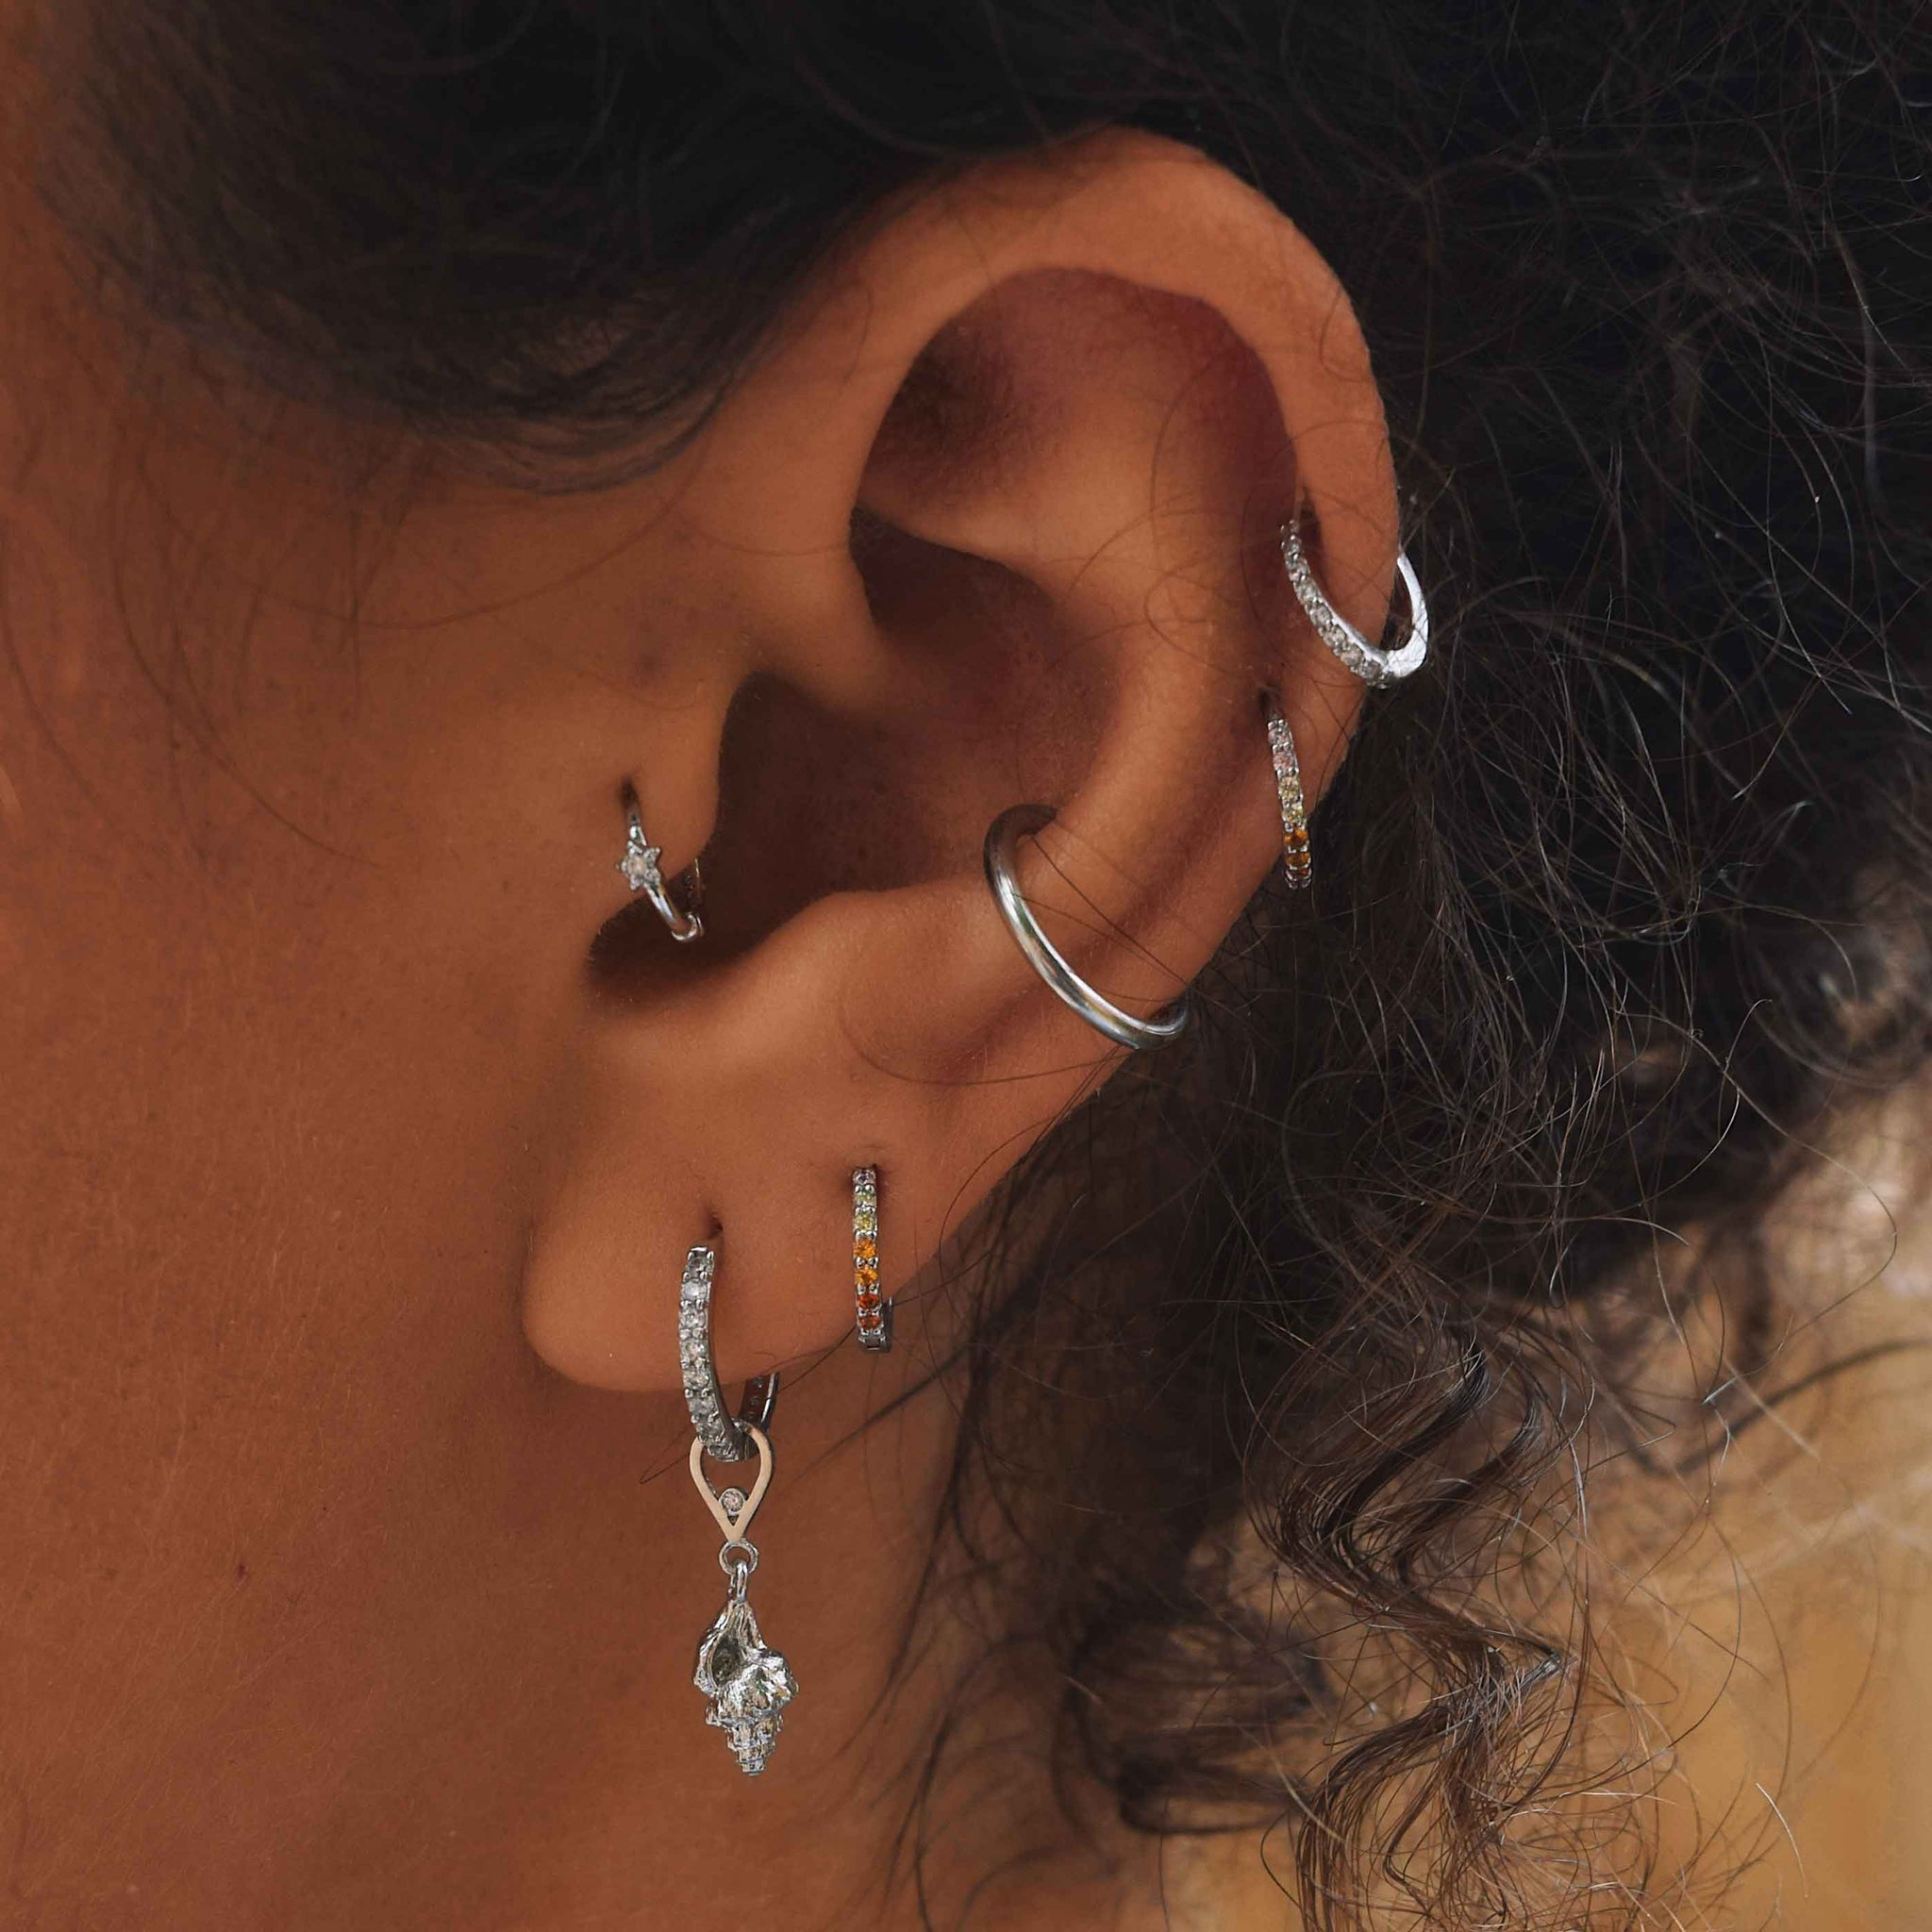 Light Rainbow Jewelled Huggies in Silver worn in second lobe and helix piercing